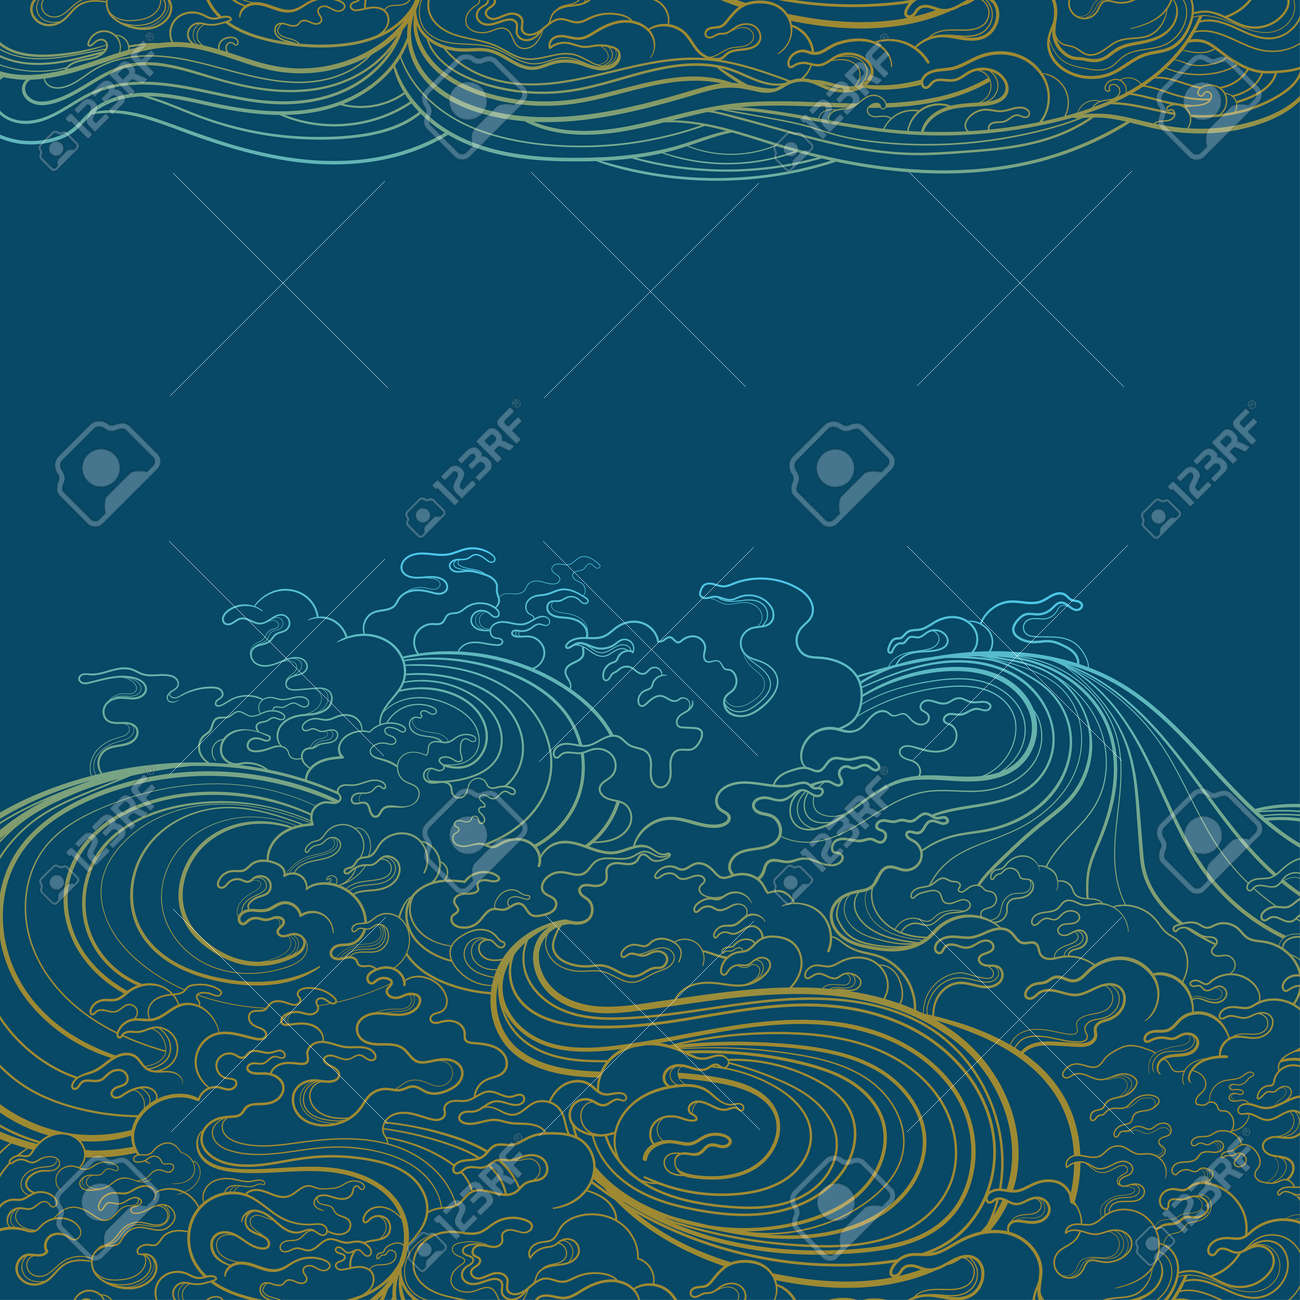 Vector background with waves in traditional oriental style. - 170091946